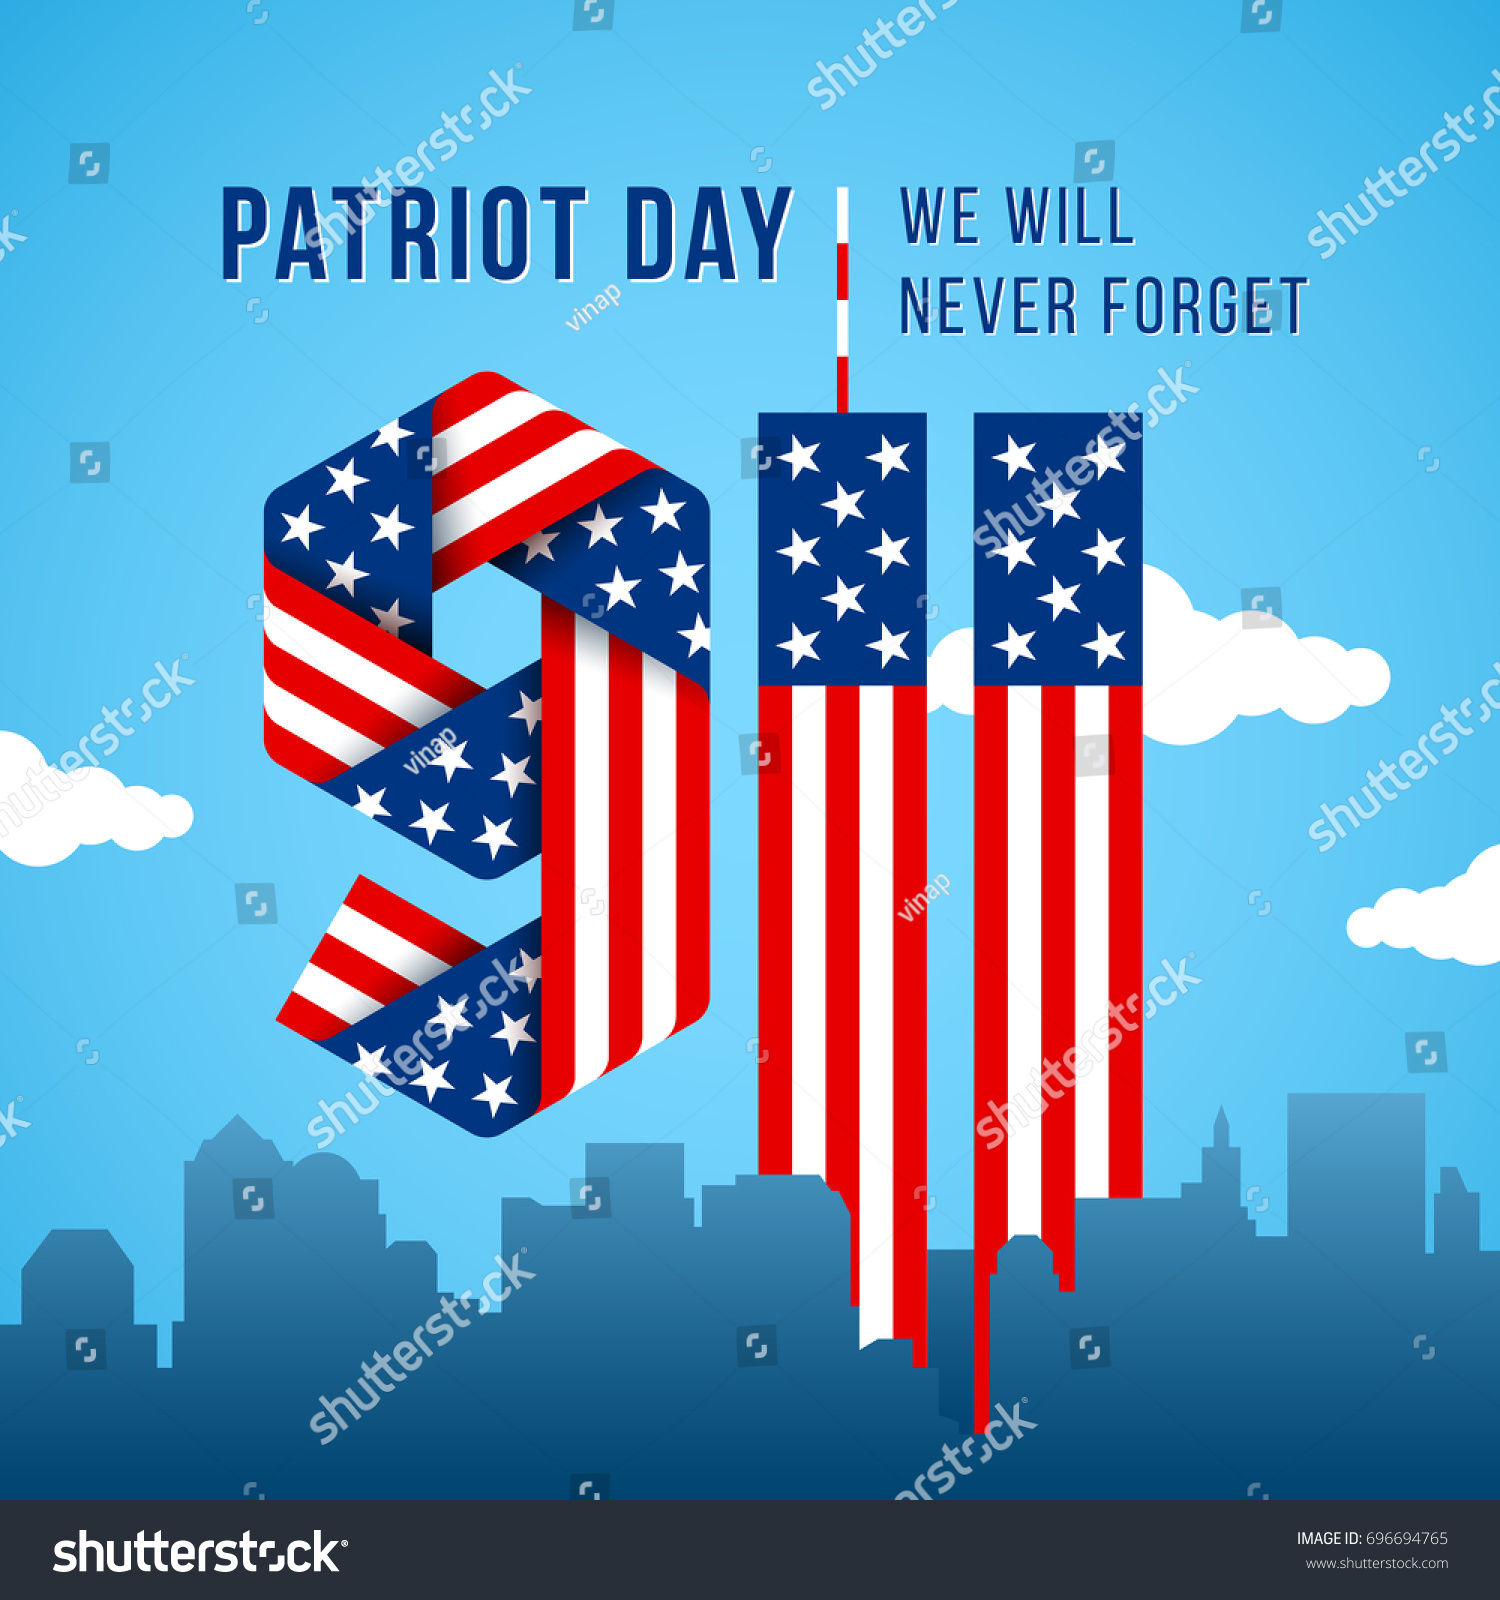 Usa 911 patriot day greeting card stock vector 696694765 shutterstock usa 911 patriot day greeting card digits made of ribbons with american flags stars and kristyandbryce Images